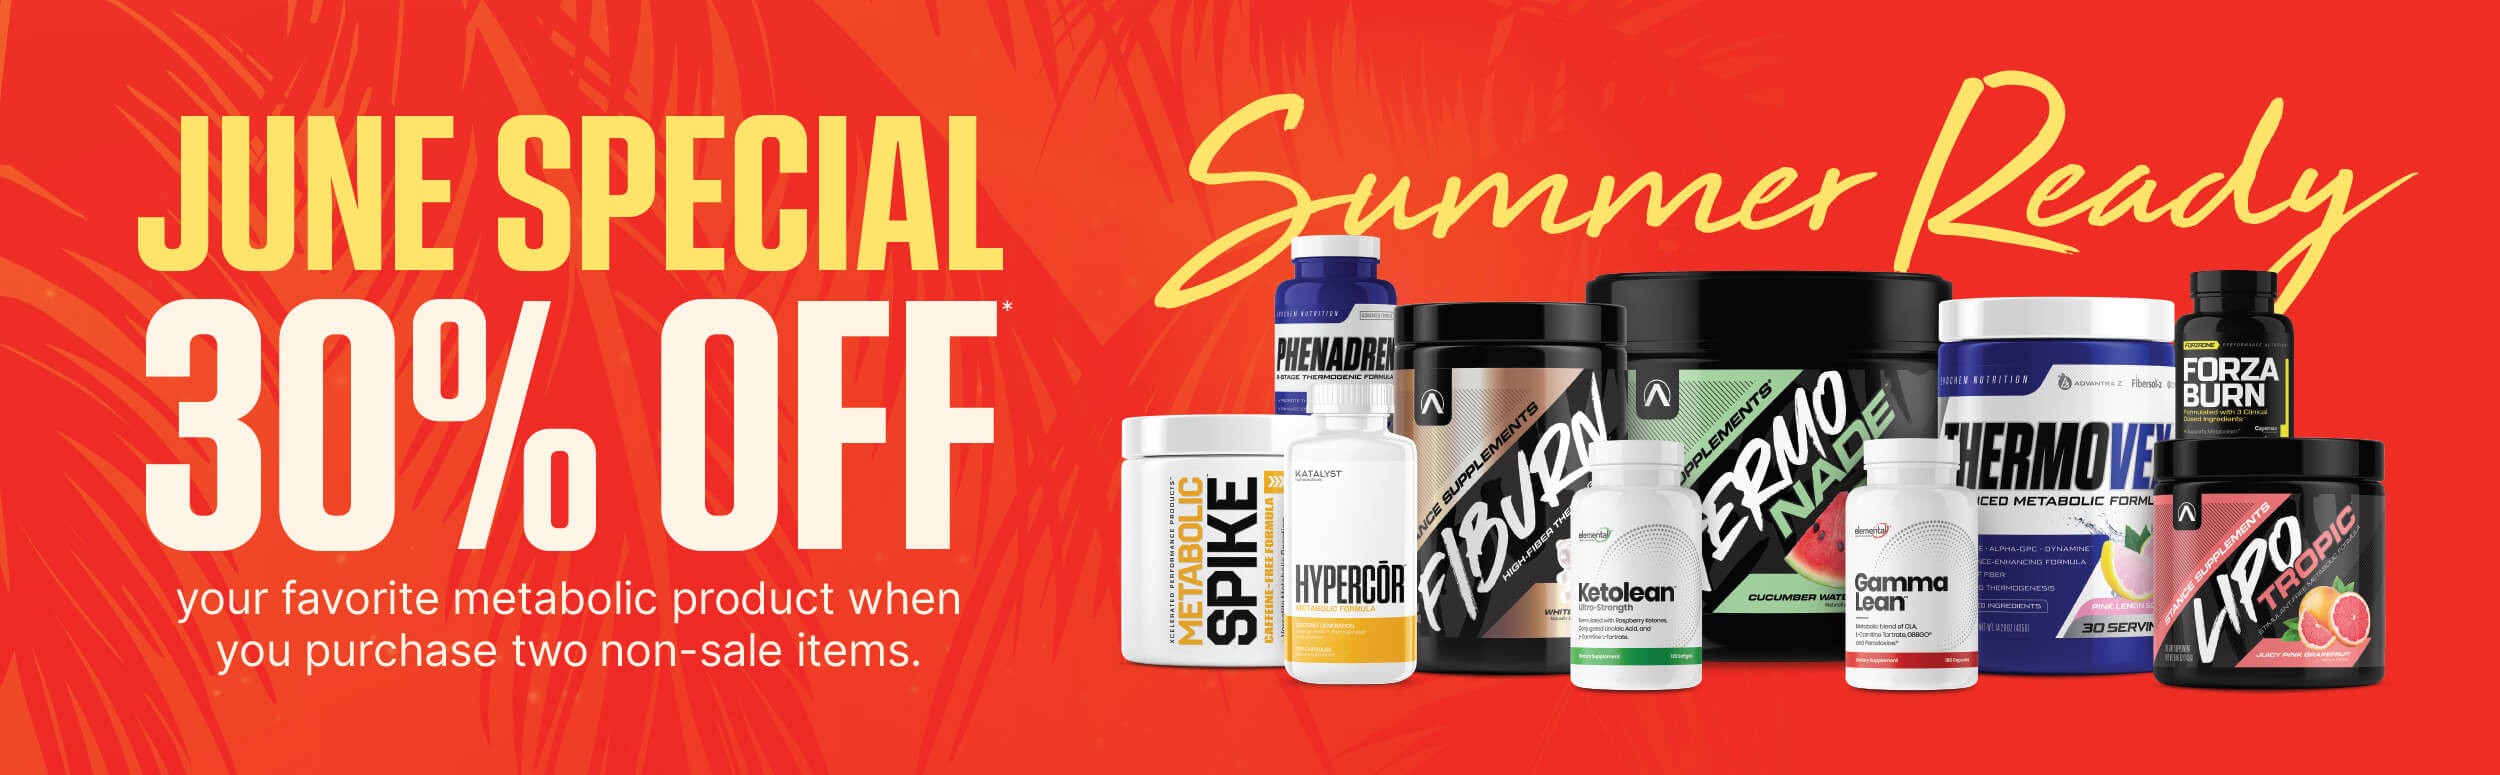 june special summer ready 30% off your favorite metabolic product when you purchase two non-sale items.